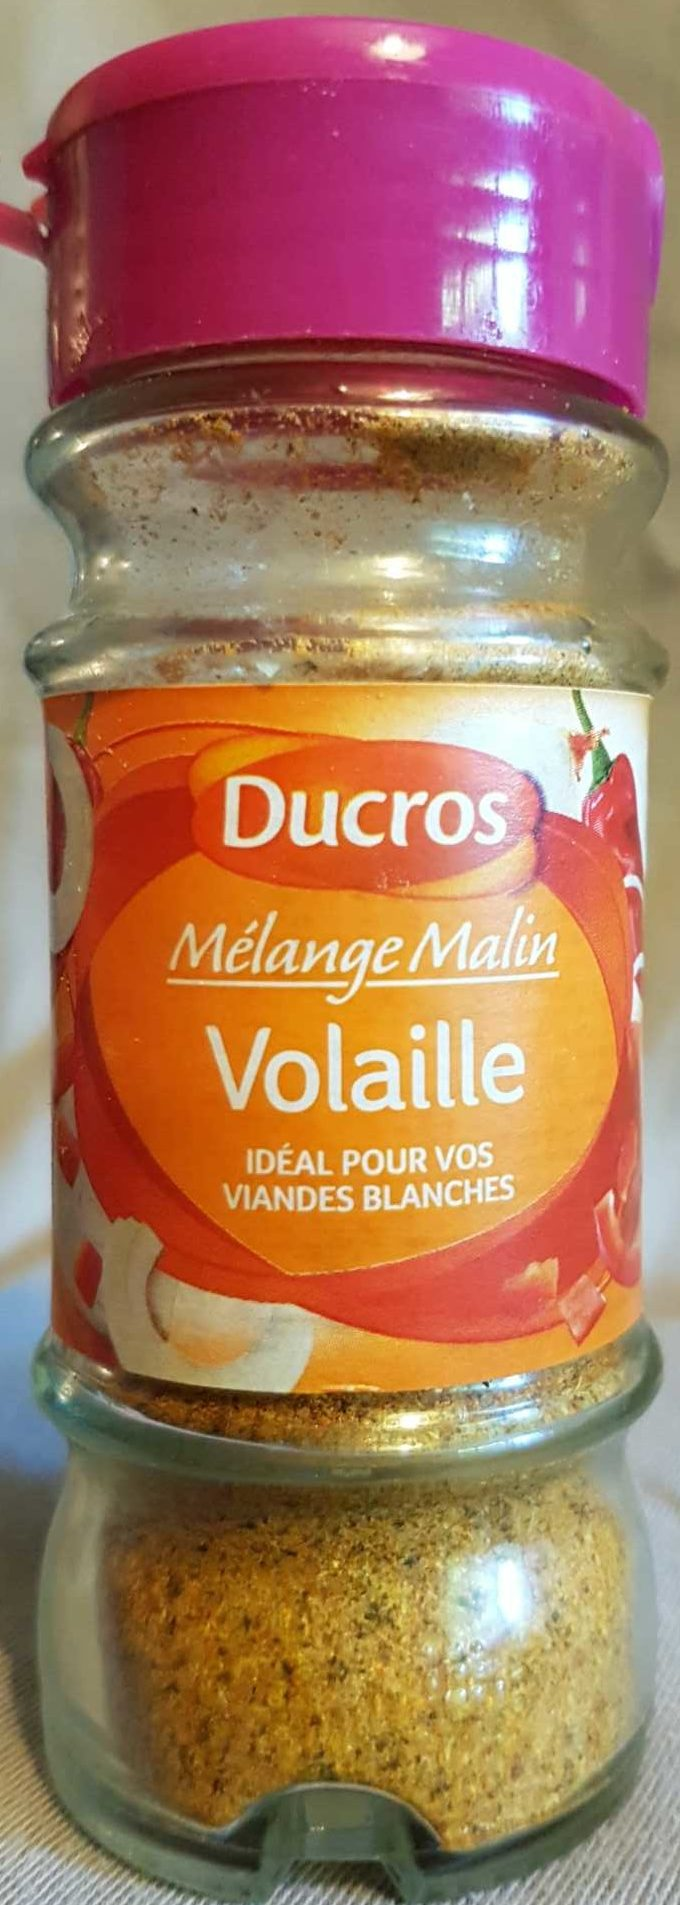 Mélange malin volaille - Product